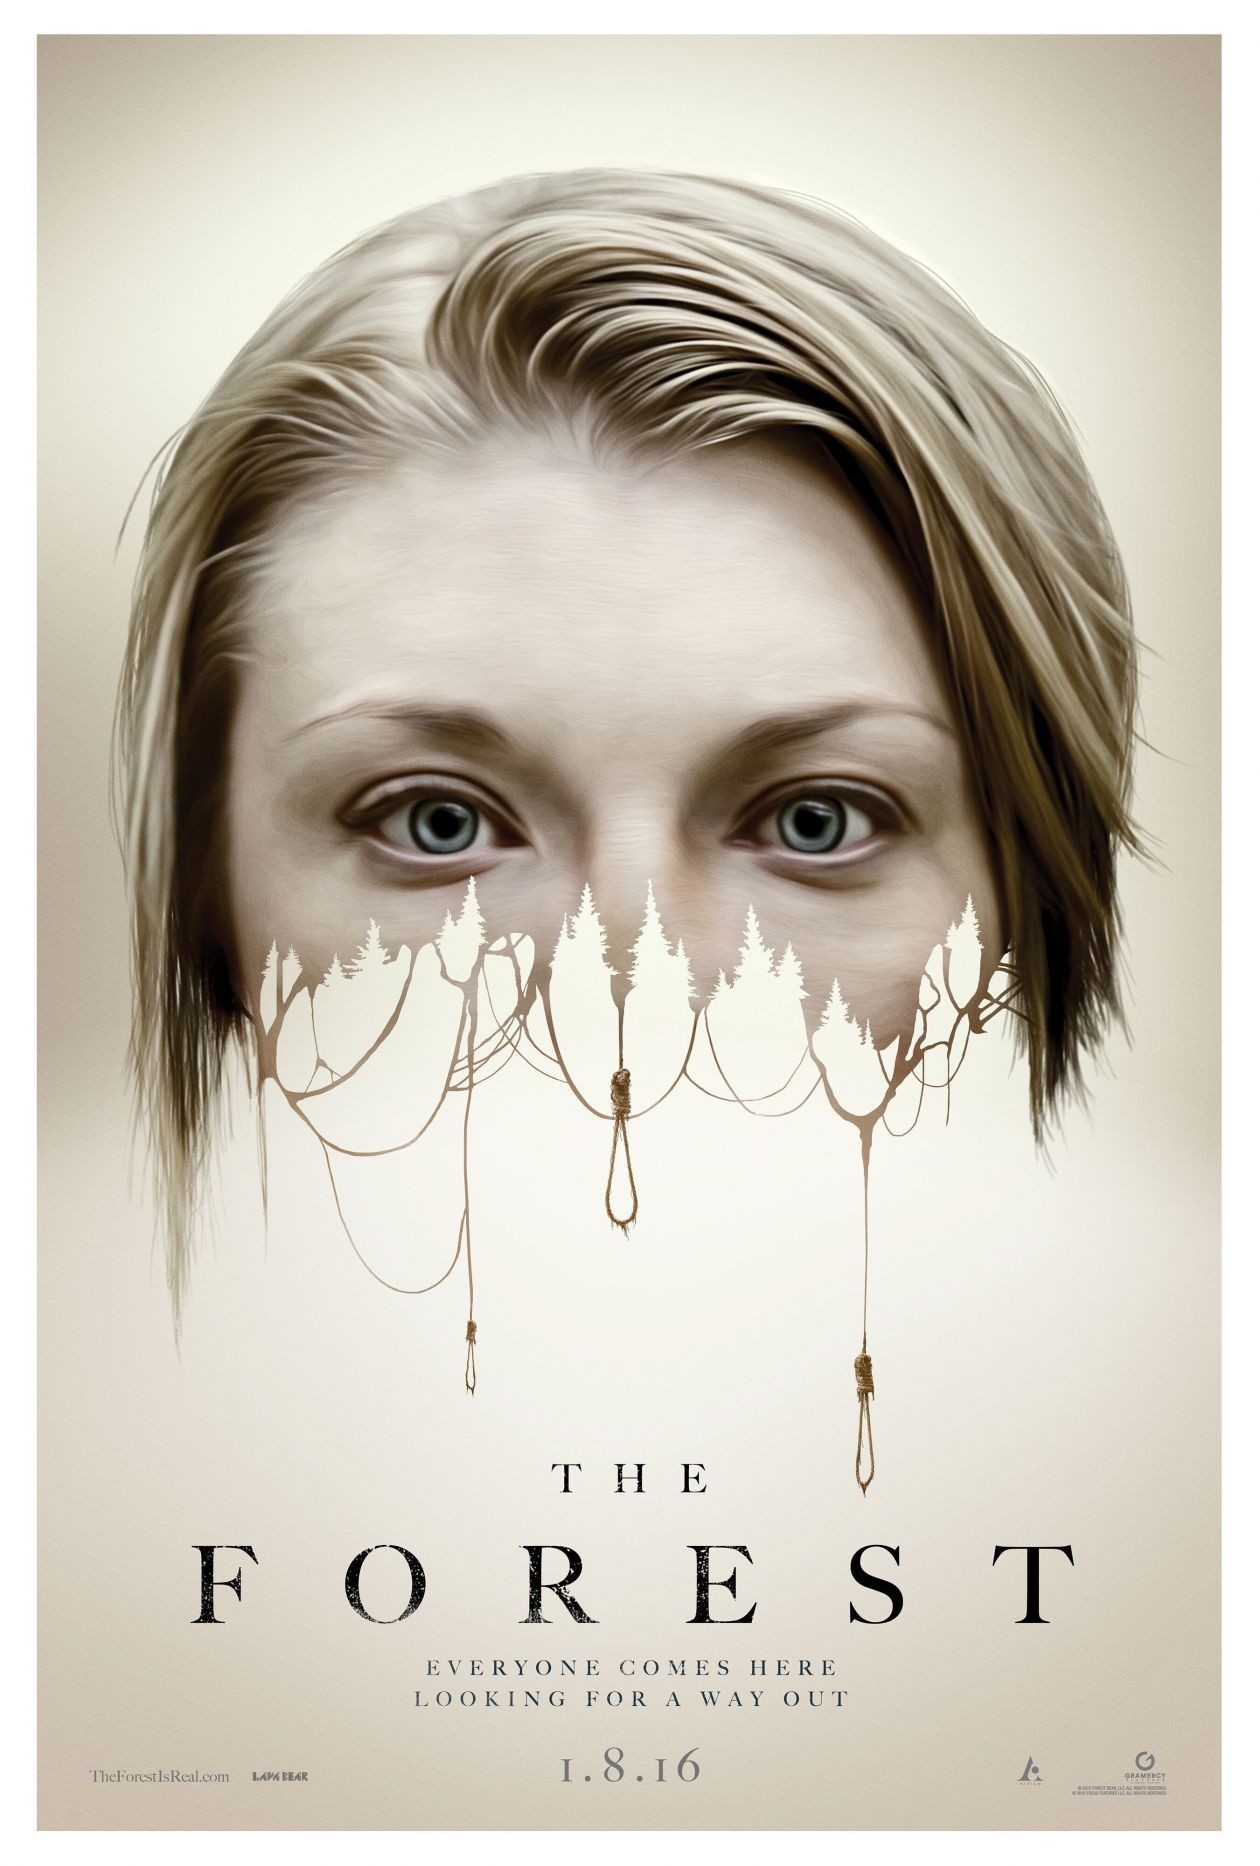 Natalie Dormer actress | The Forest / Jason Zada 2016 Movie Poster / Affiche film